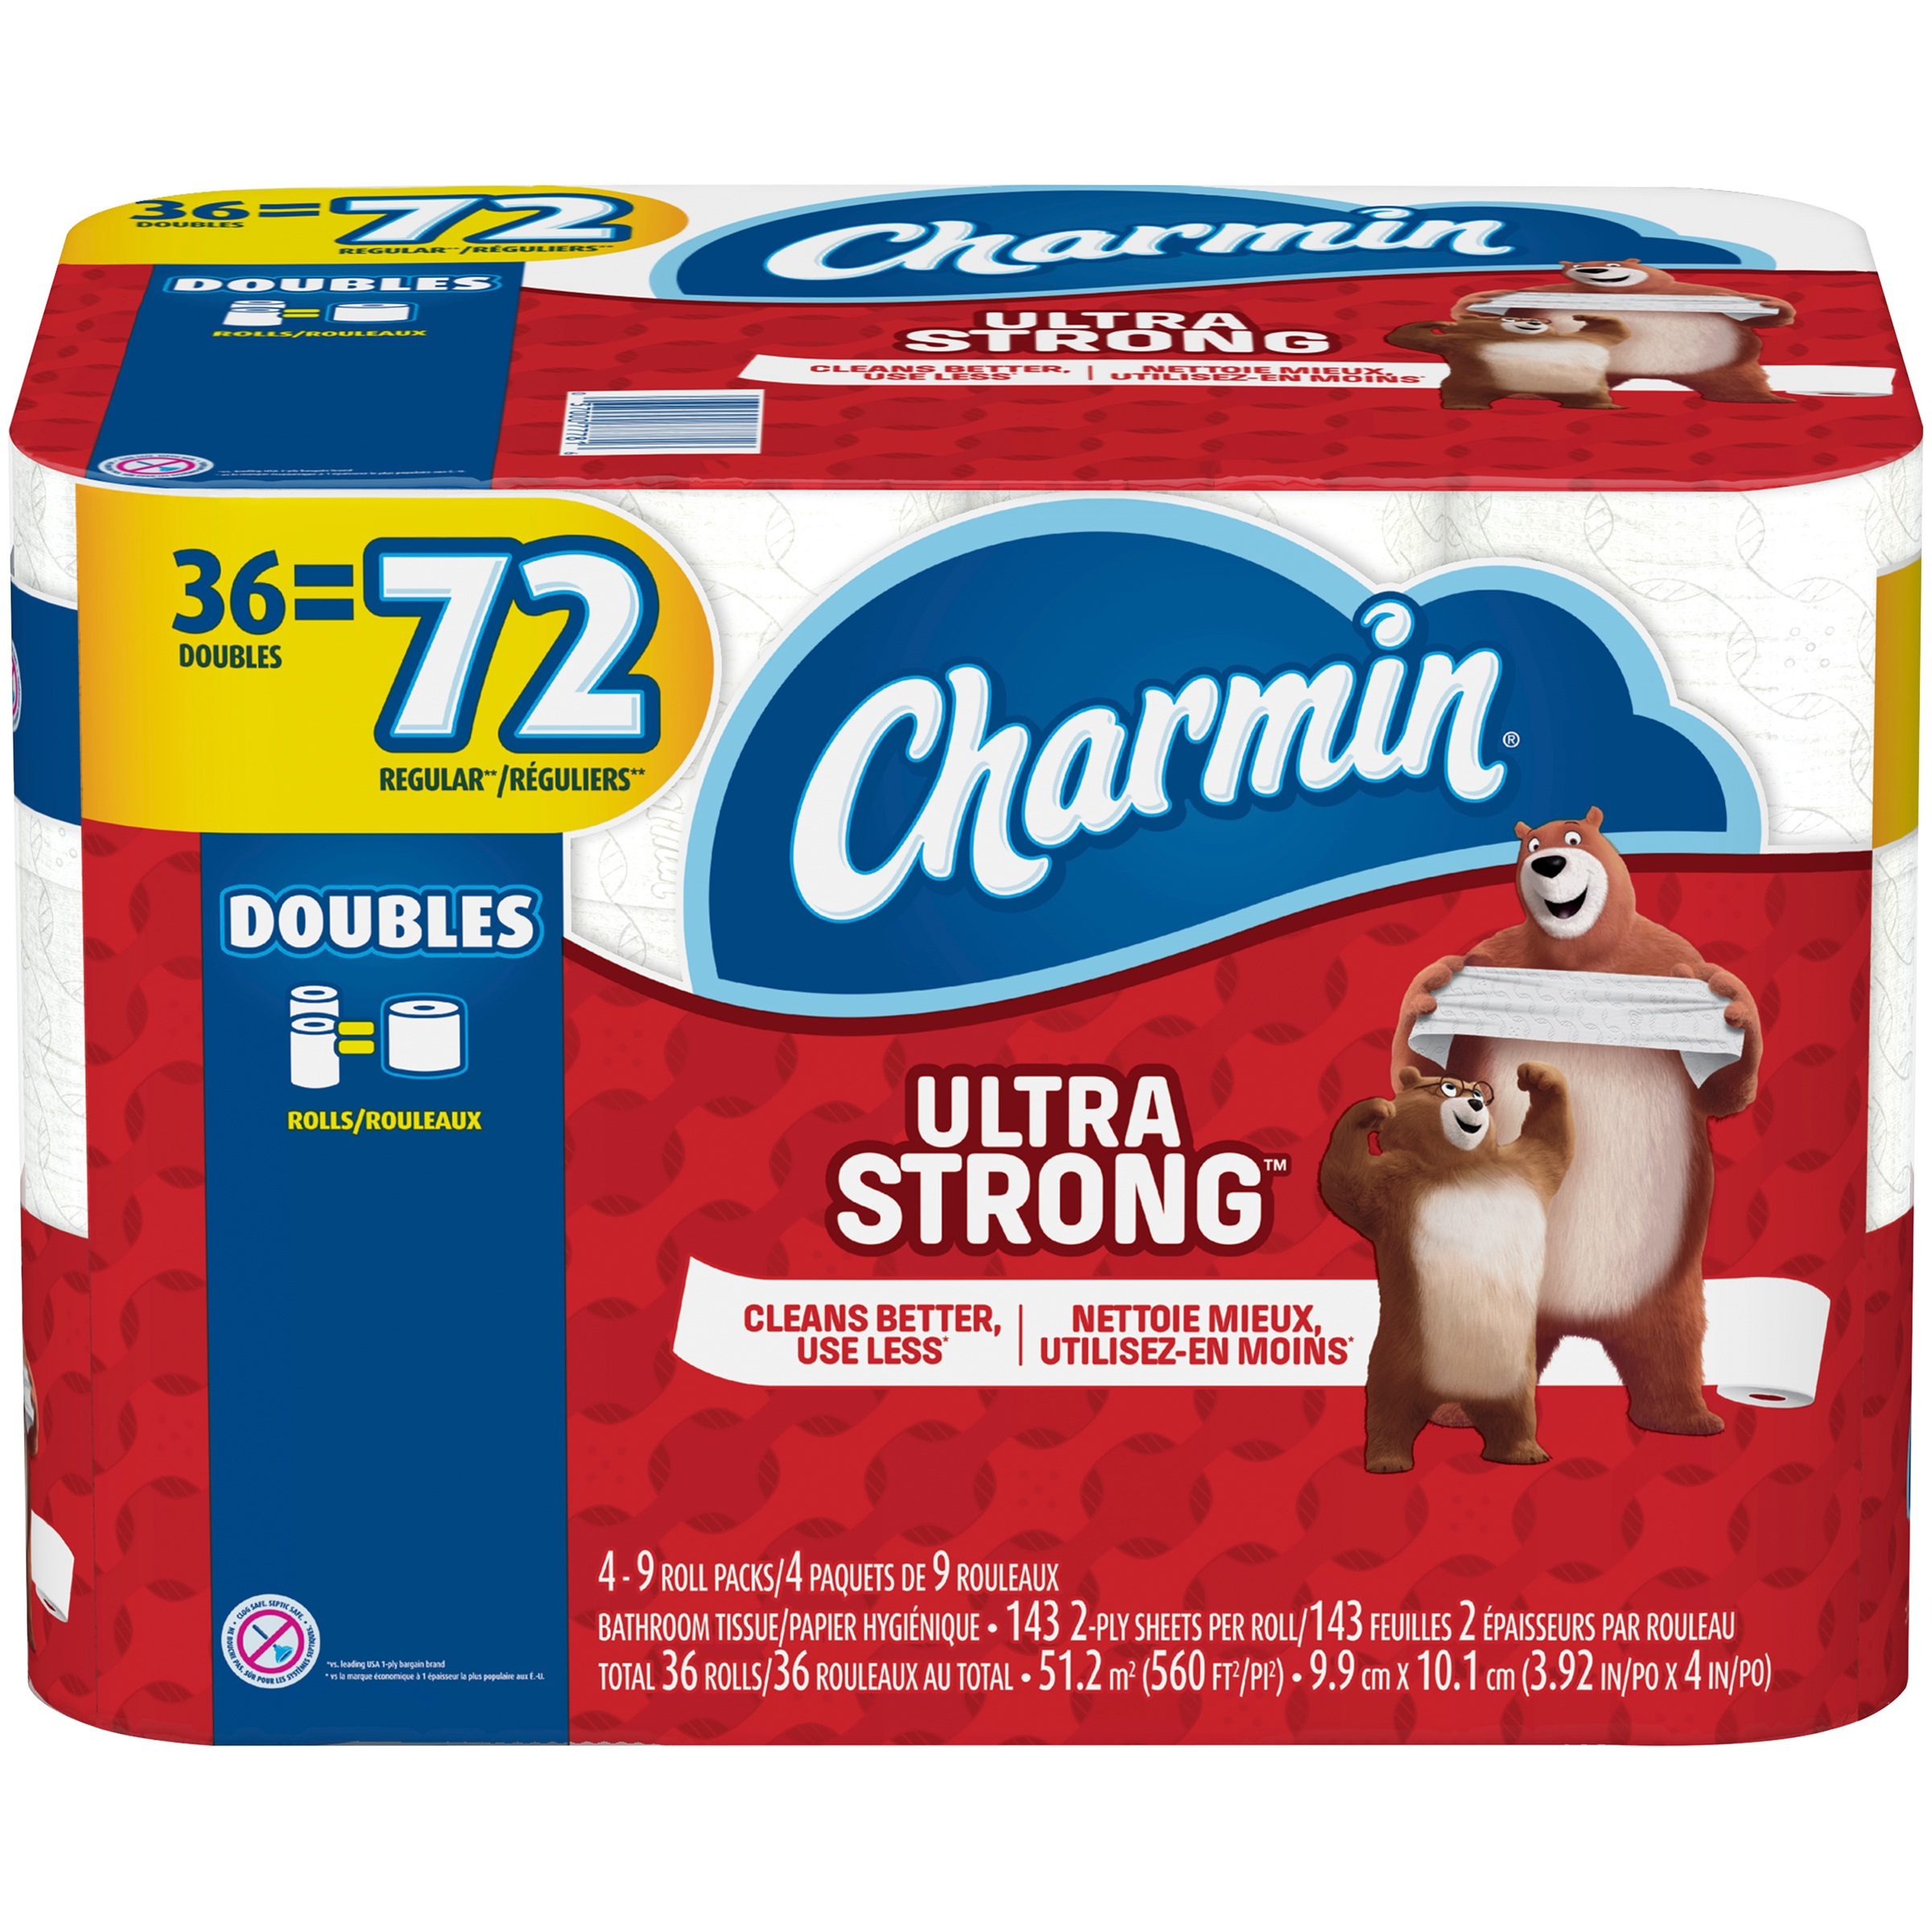 Charmin Ultra Strong Toilet Paper 36 Double Rolls by Procter & Gamble